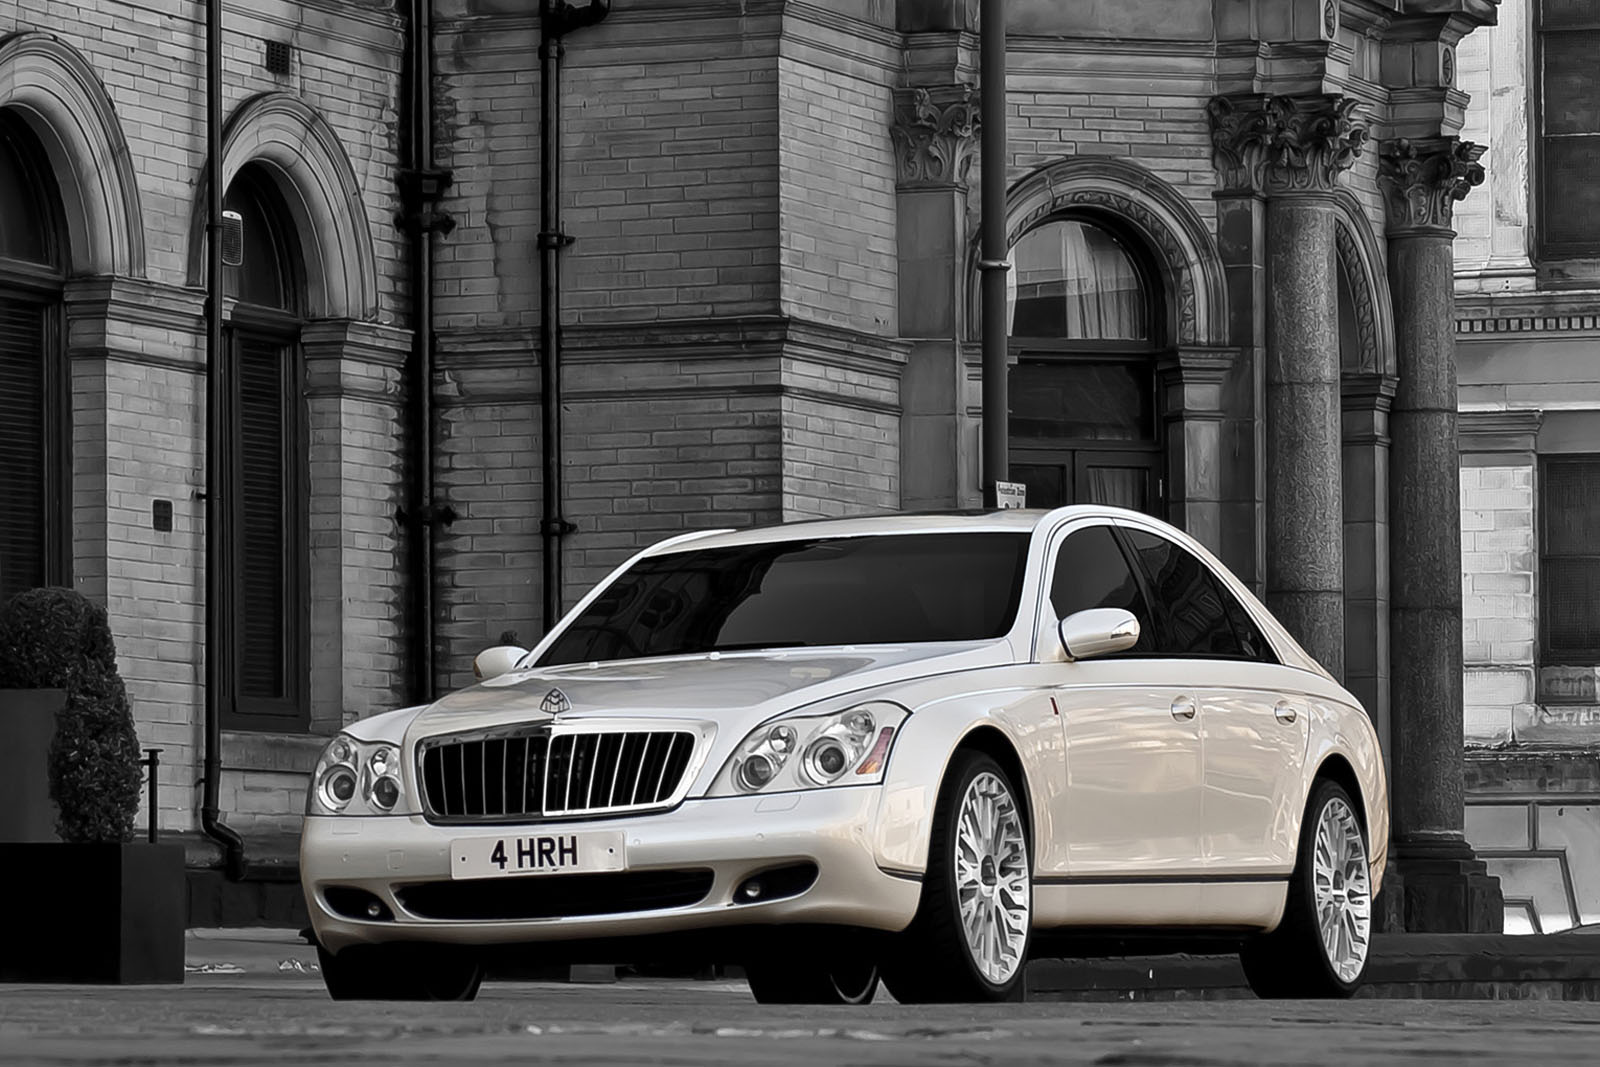 The eternal Beauty of Maybach 2012 57 sedan #10